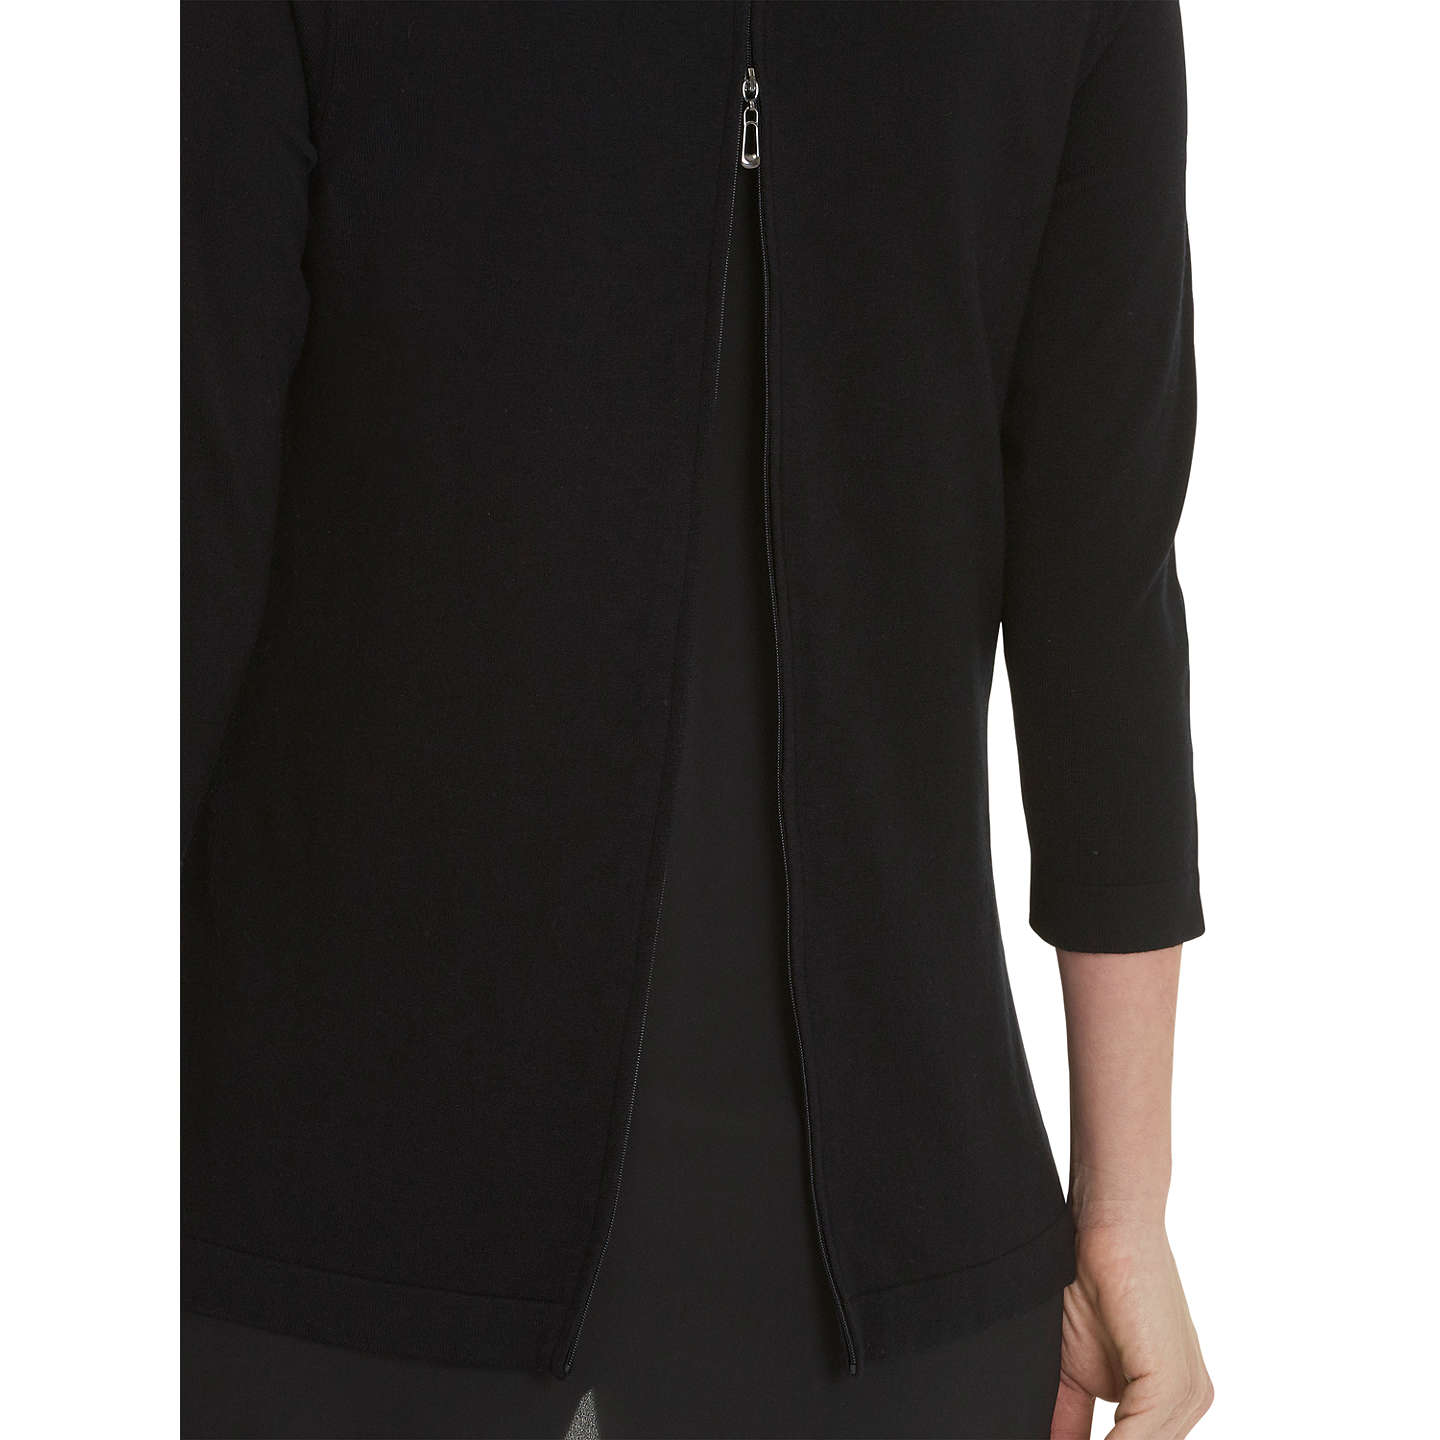 BuyBetty Barclay Oversized Double Layer Jumper, Black, 8 Online at johnlewis.com